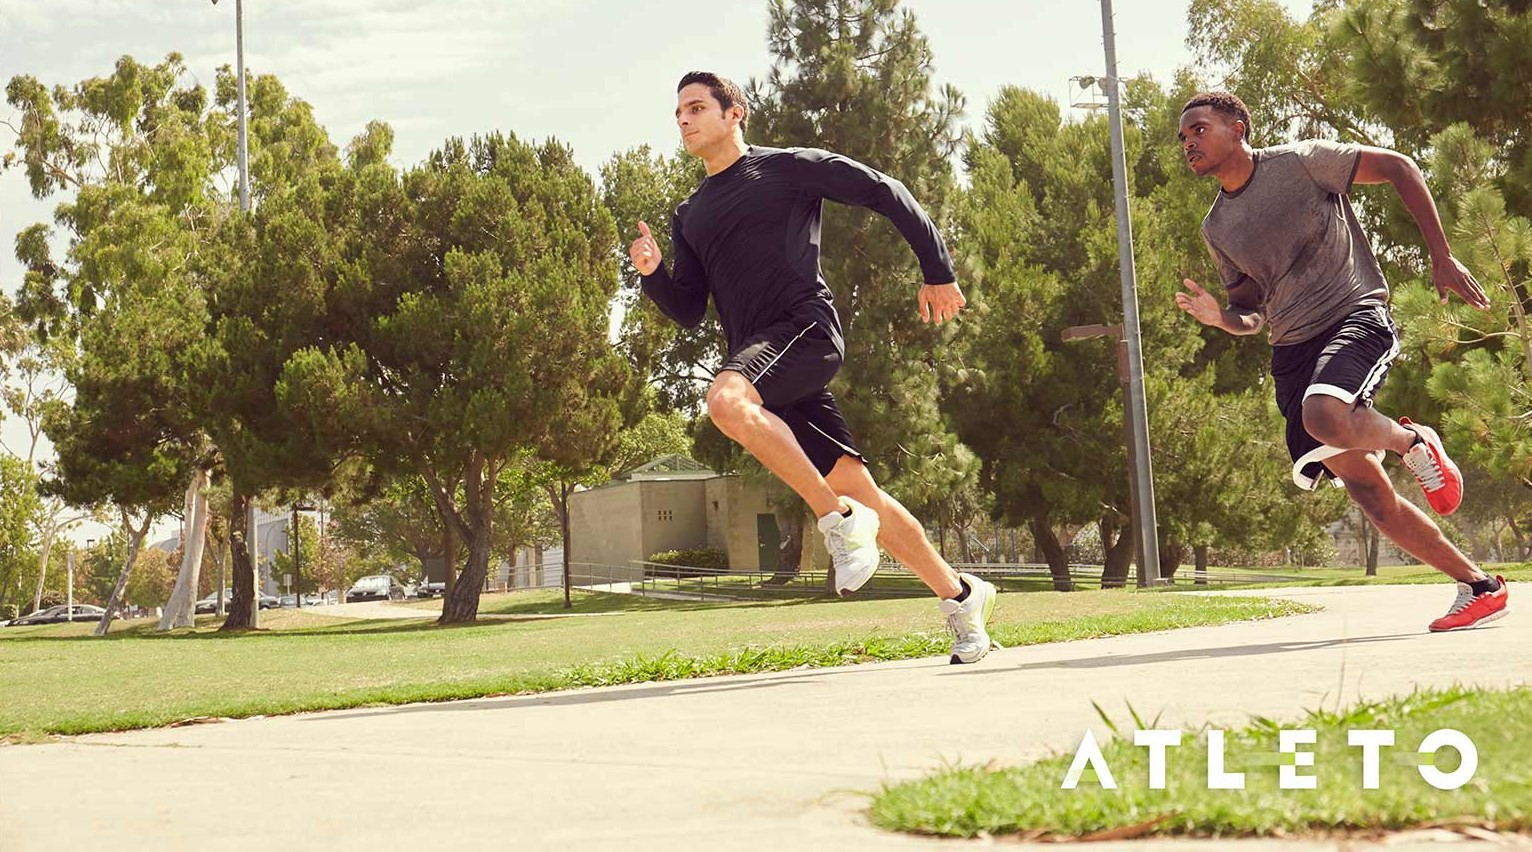 Running Jogging App Atleto App Connects Like Minded Athletes